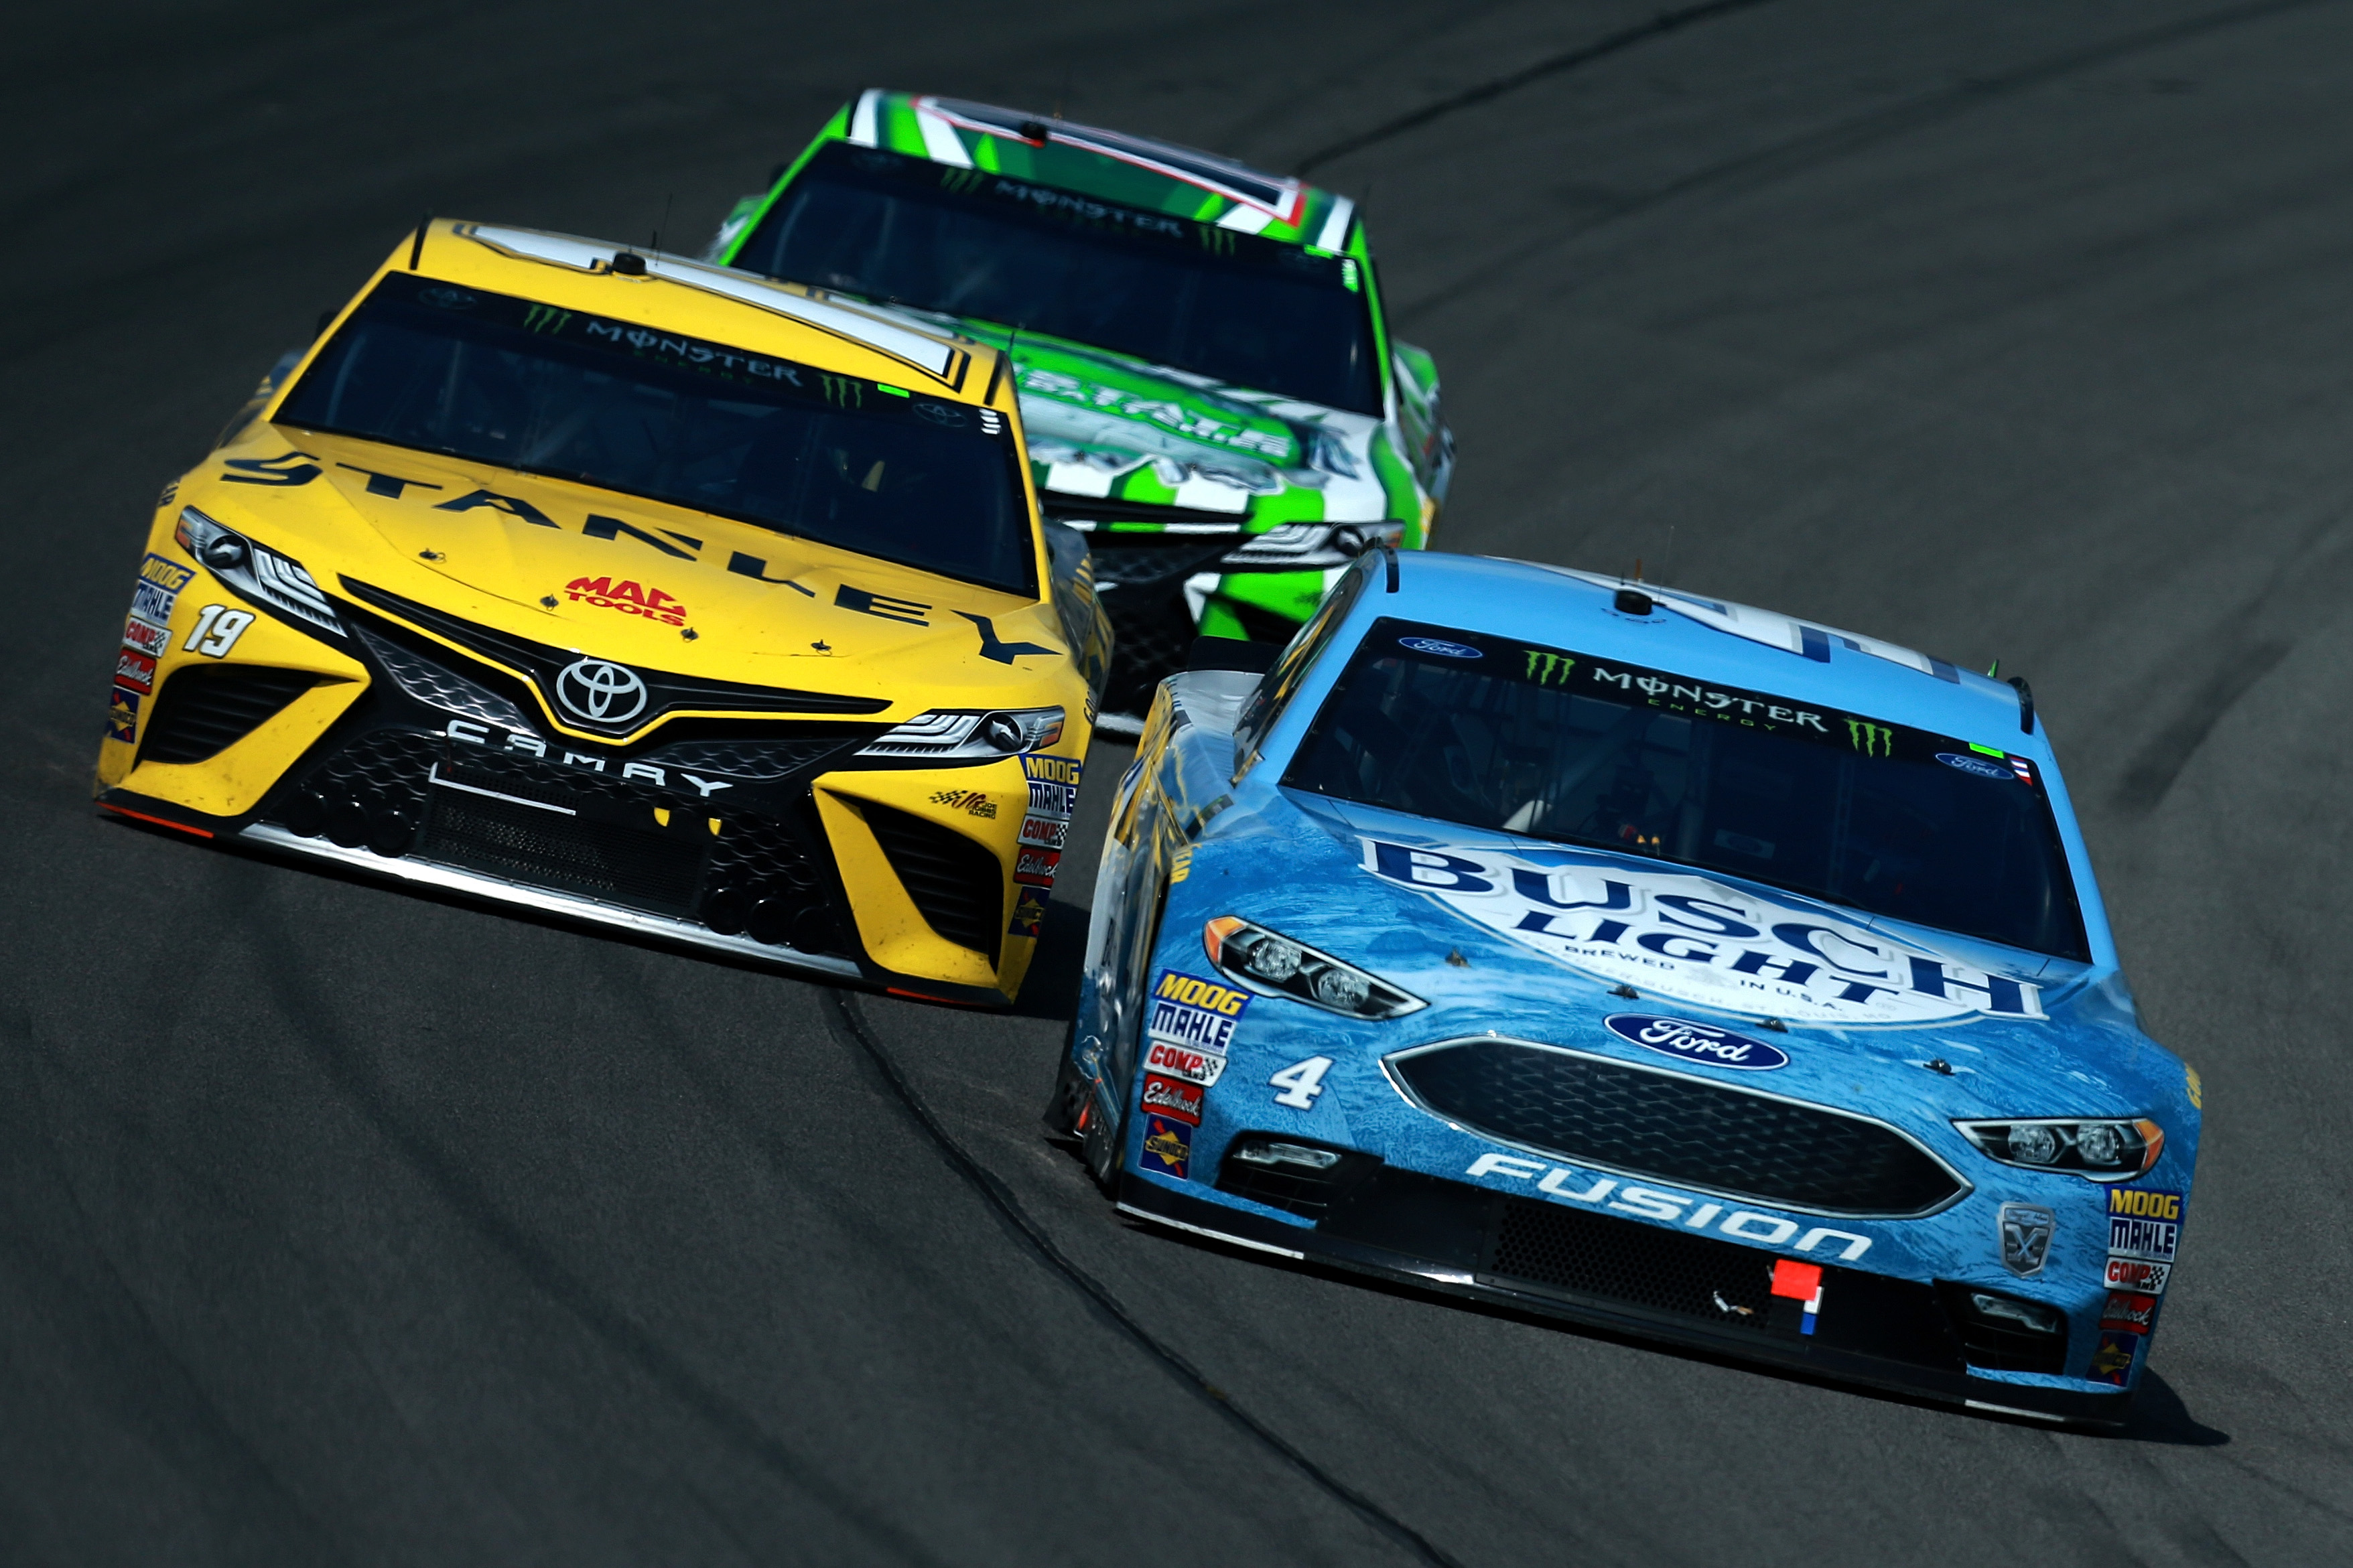 Kevin Harvick, Daniel Suarez and Kyle Busch at Michigan International Speedway